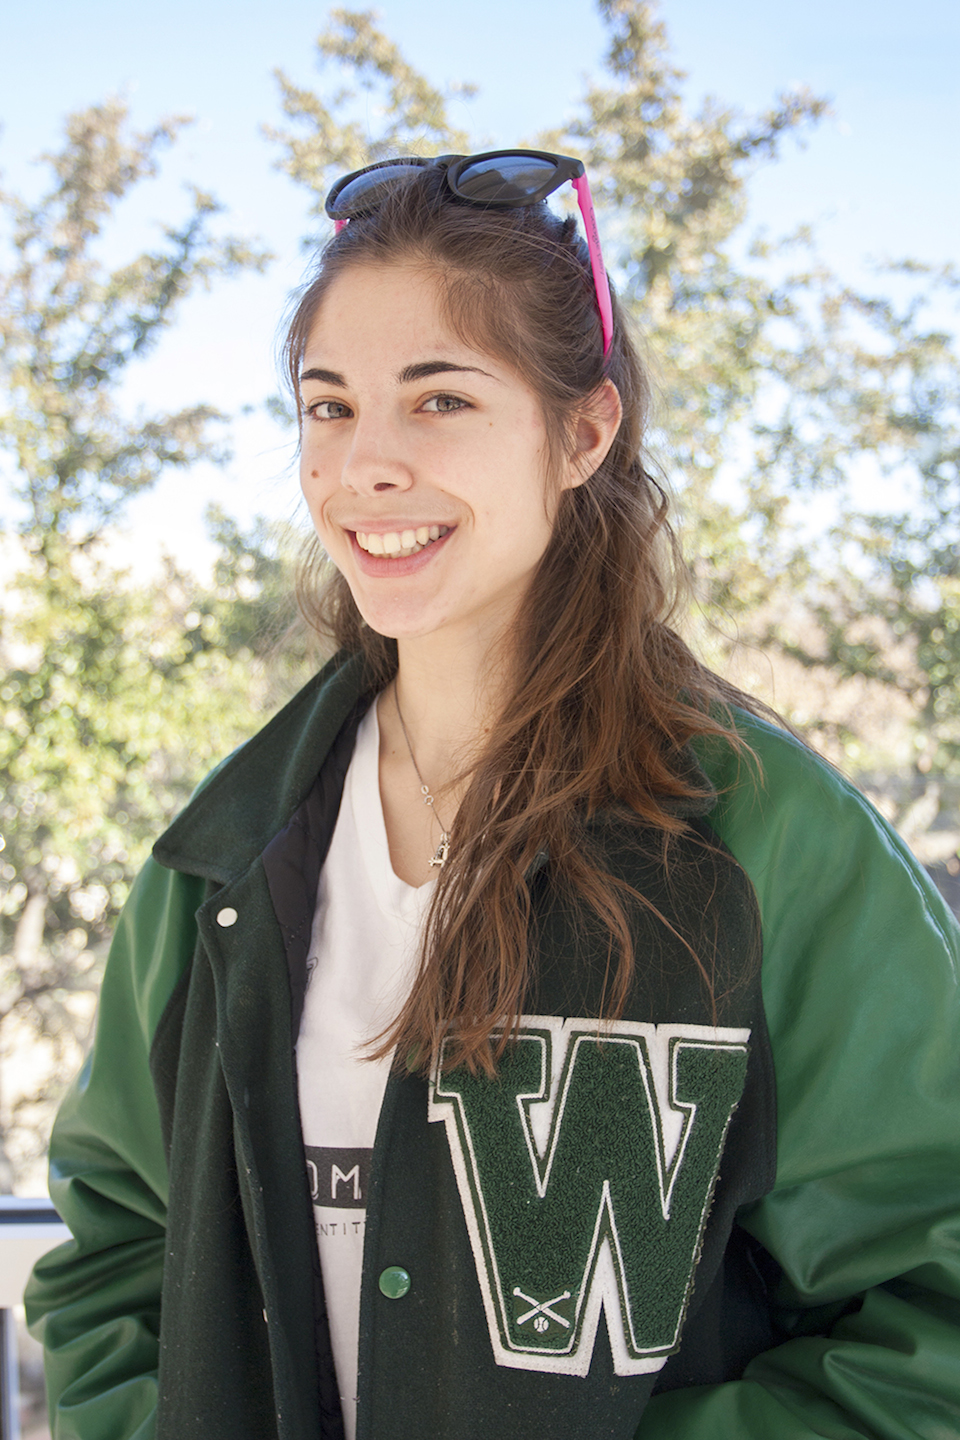 Tiffany Sweet, an ATEC major from Waxahachie, is a Terry Scholar who hopes to work in film animation.